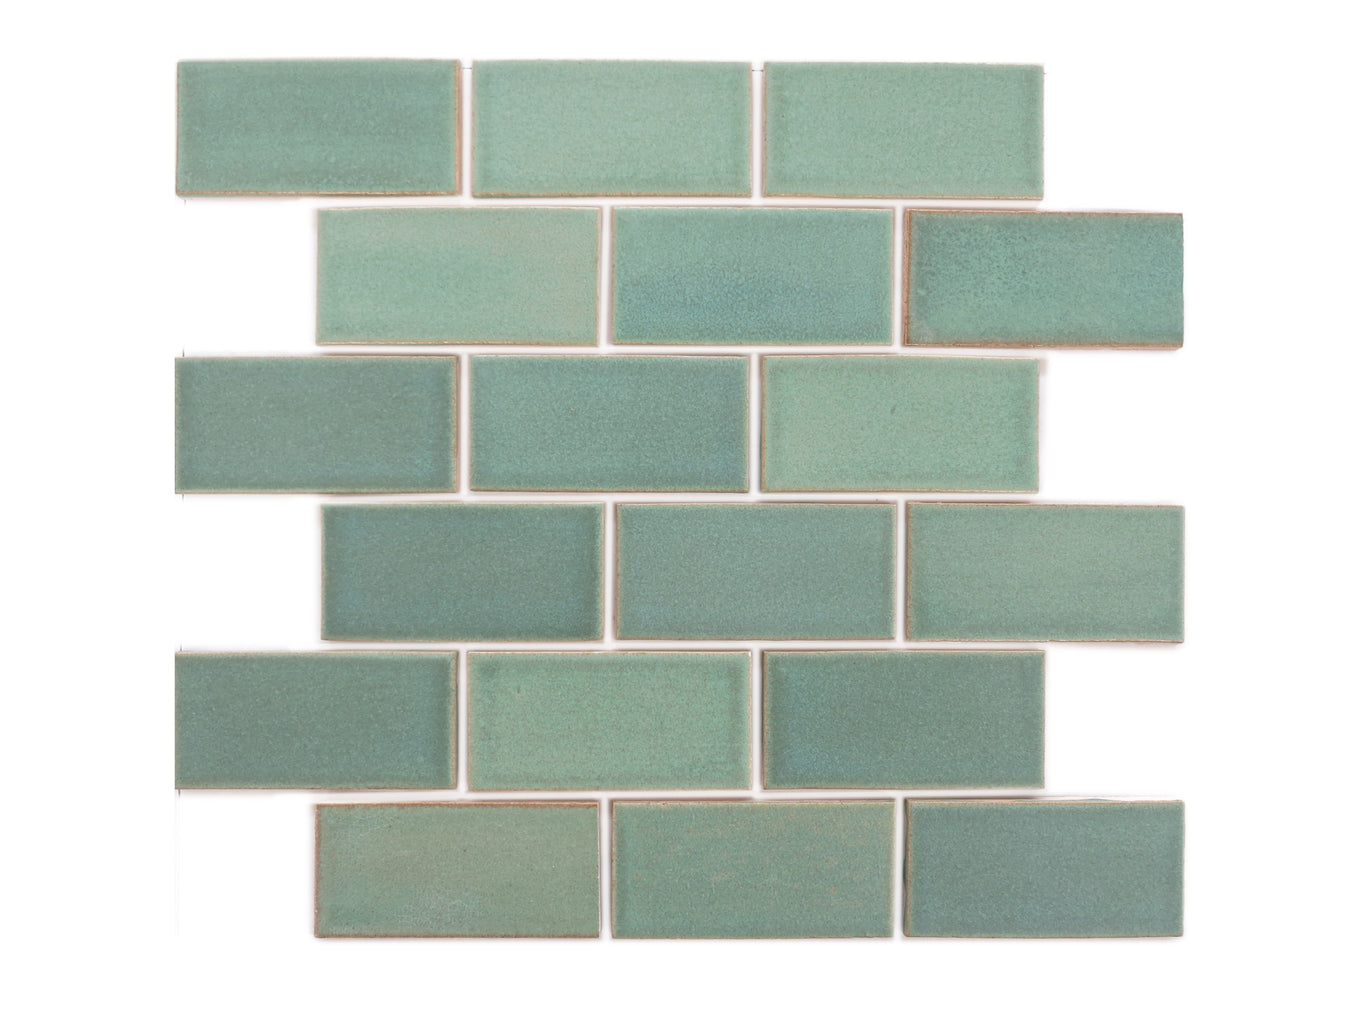 2x4 subway tile 913 old copper mercury mosaics 2x4 subway tile old copper share share on facebook email product pin on pinterest dailygadgetfo Gallery